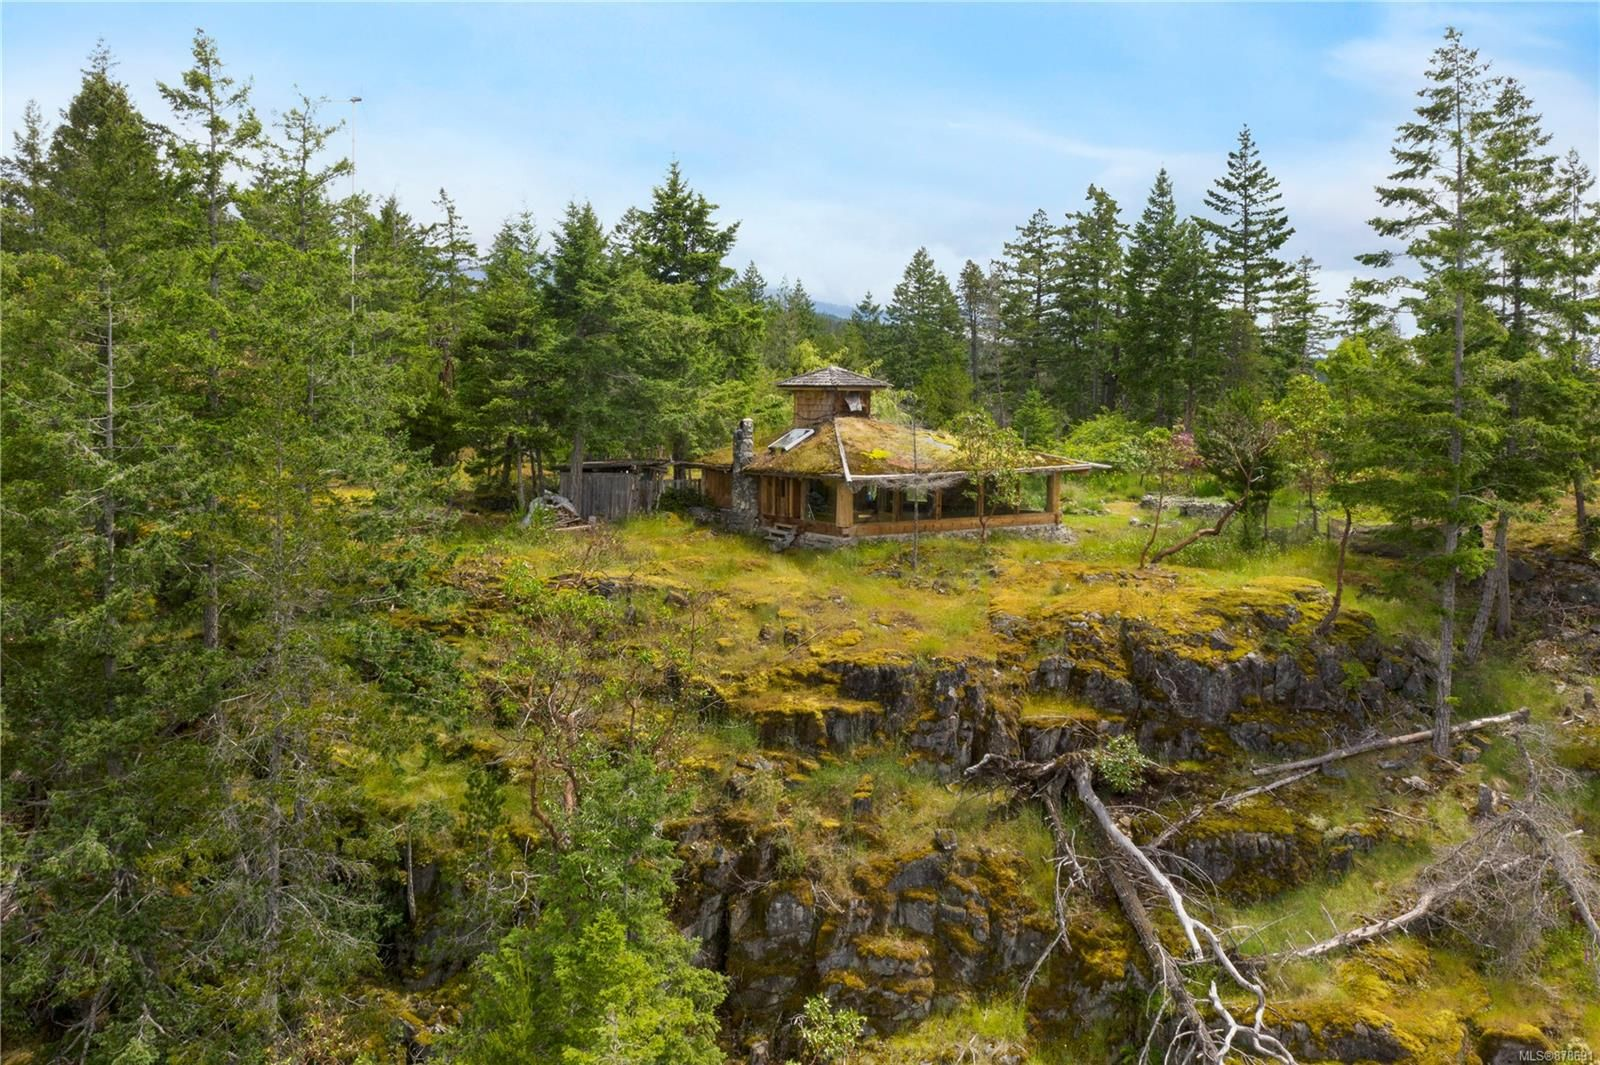 Photo 15: Photos: 979 Thunder Rd in : Isl Cortes Island House for sale (Islands)  : MLS®# 878691